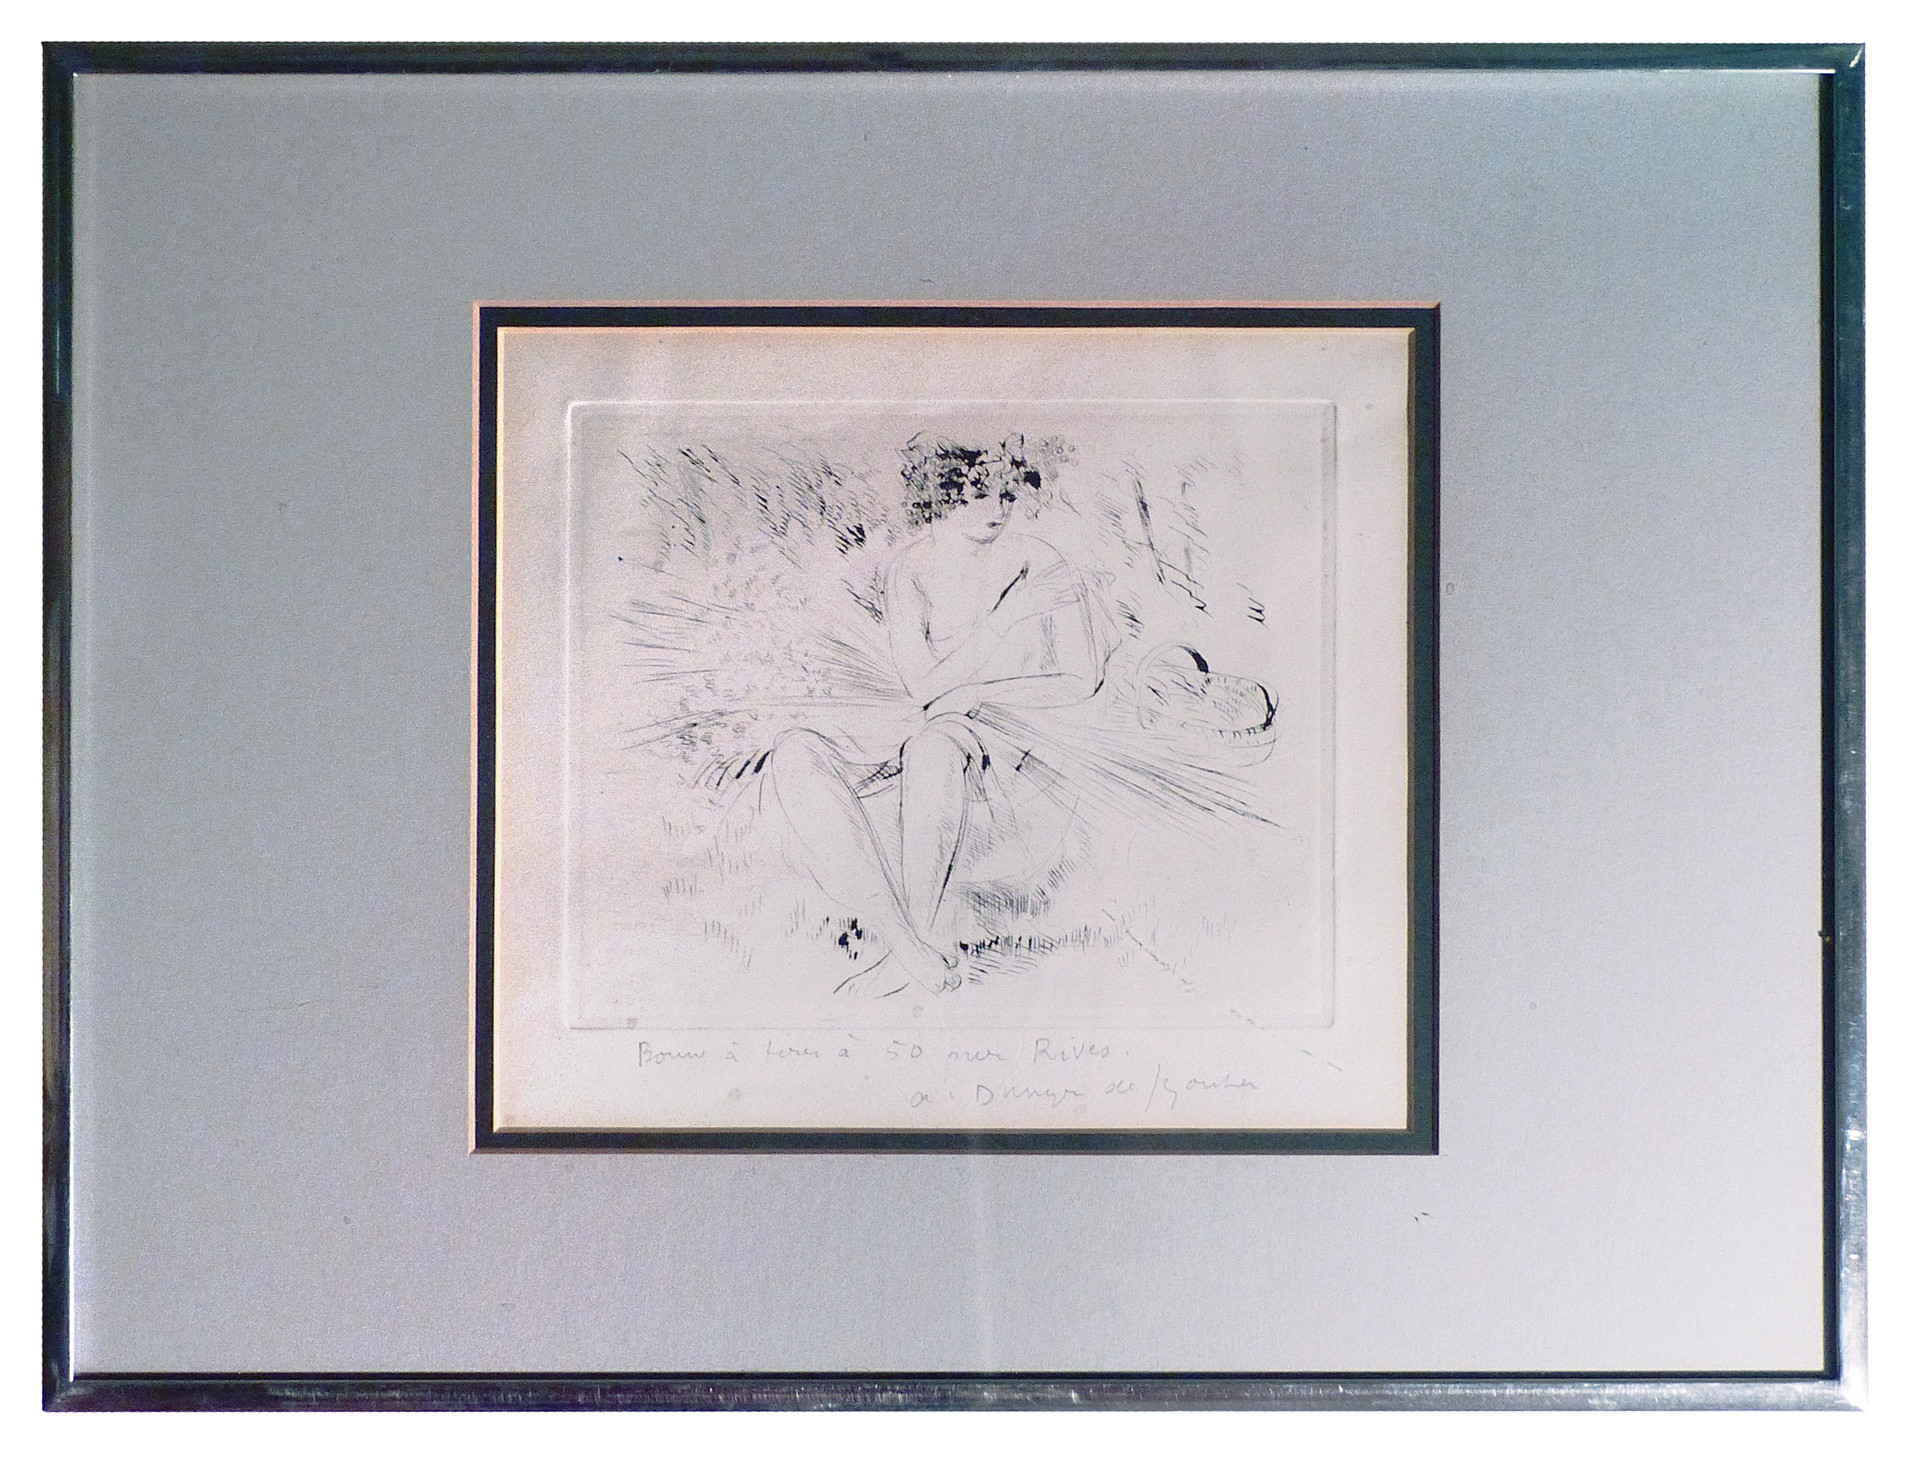 Bon a Tirer 1965 Etching on rives paper 8 x 16 in. Hand-signed